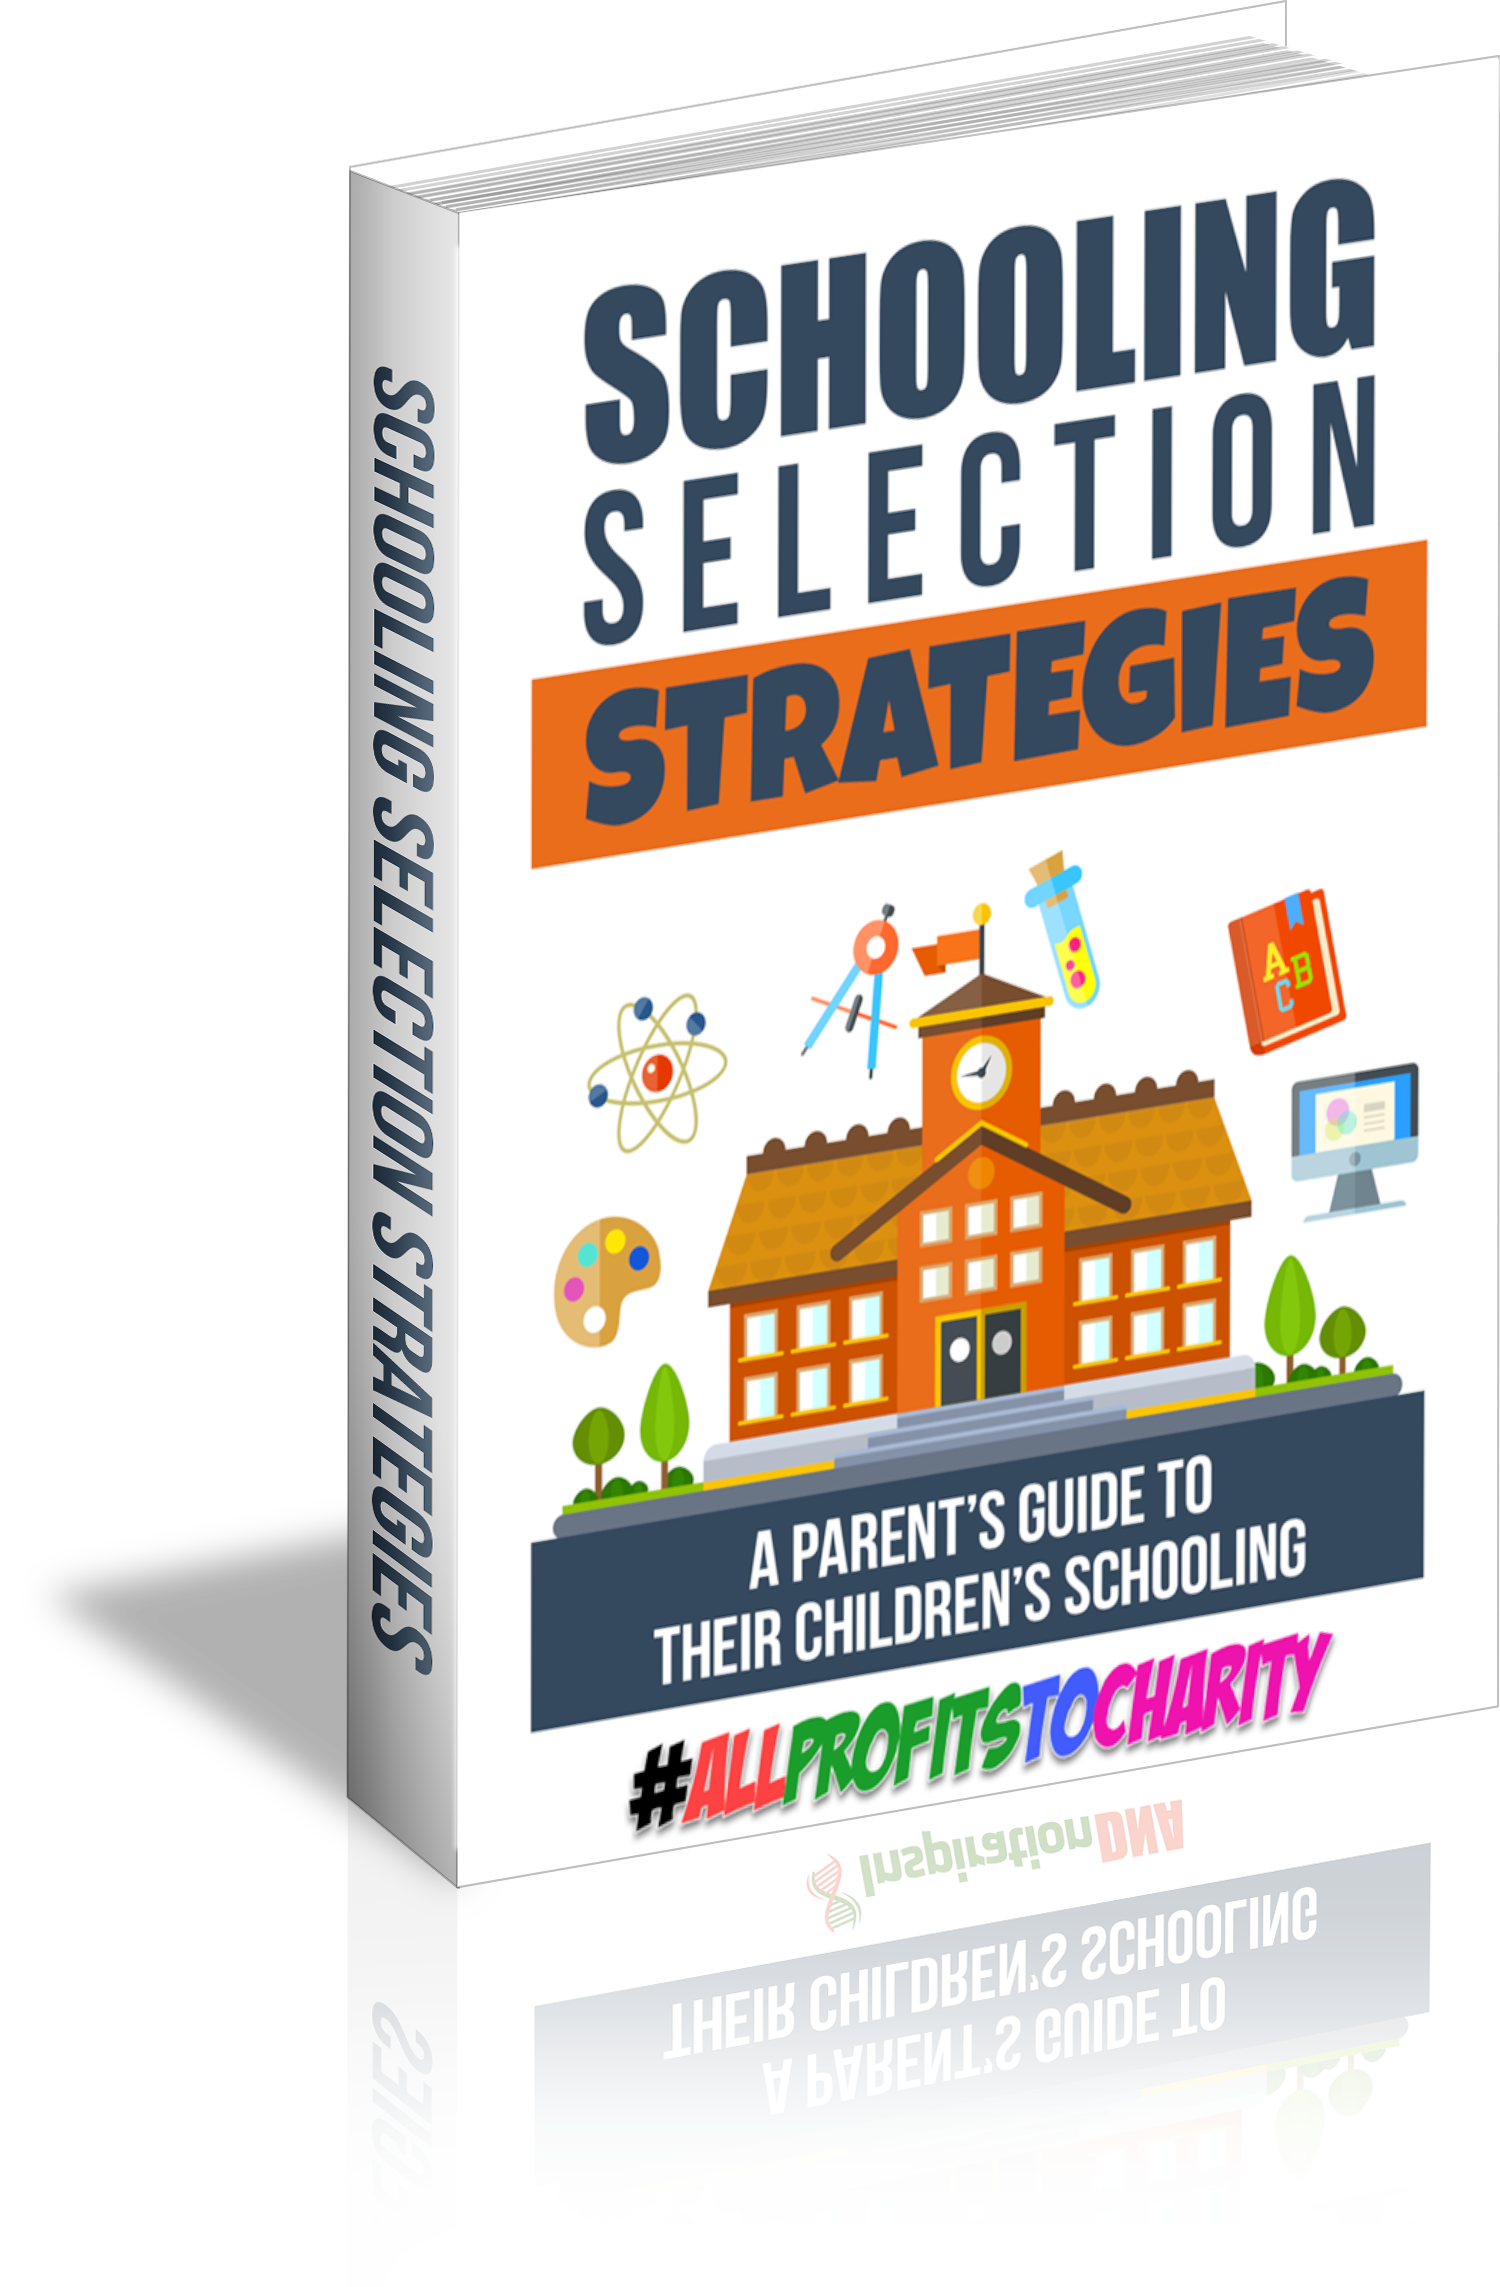 Schooling Selection Strategies cover